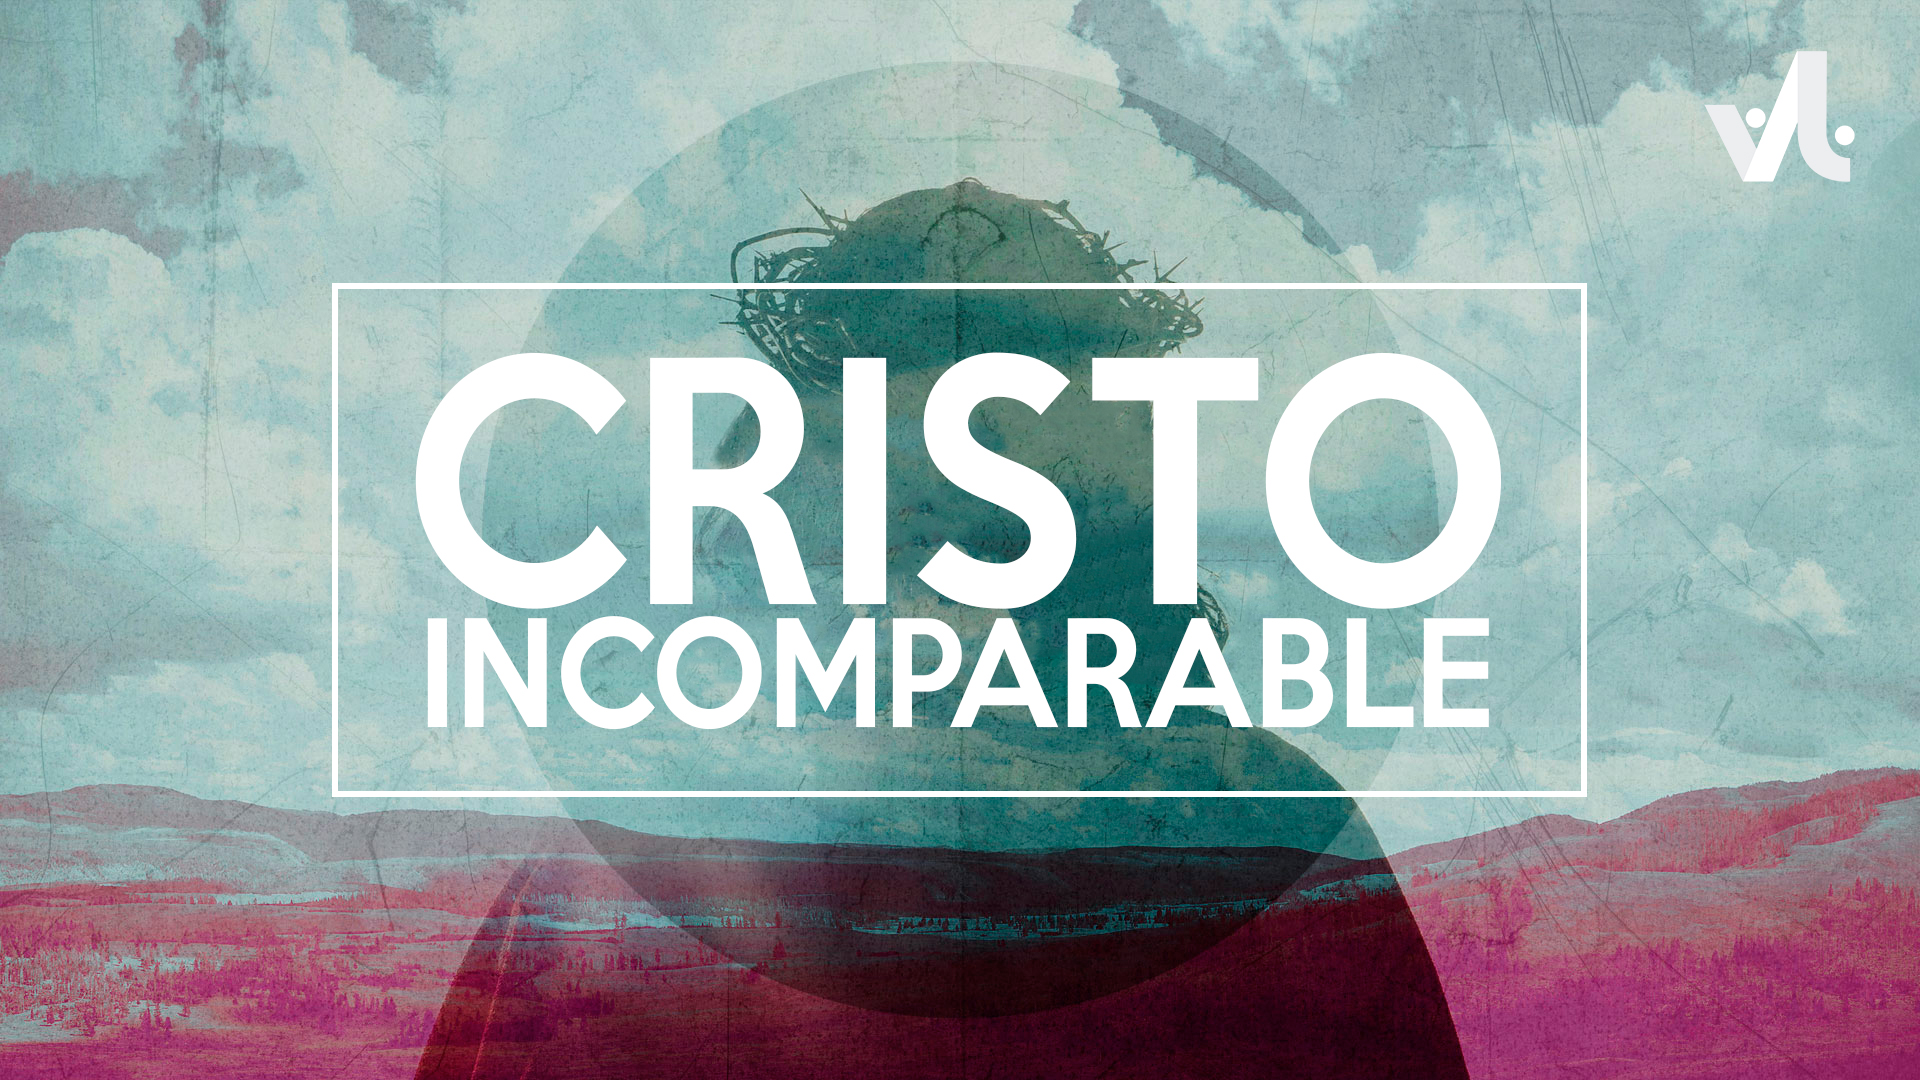 Cristo Incomparable